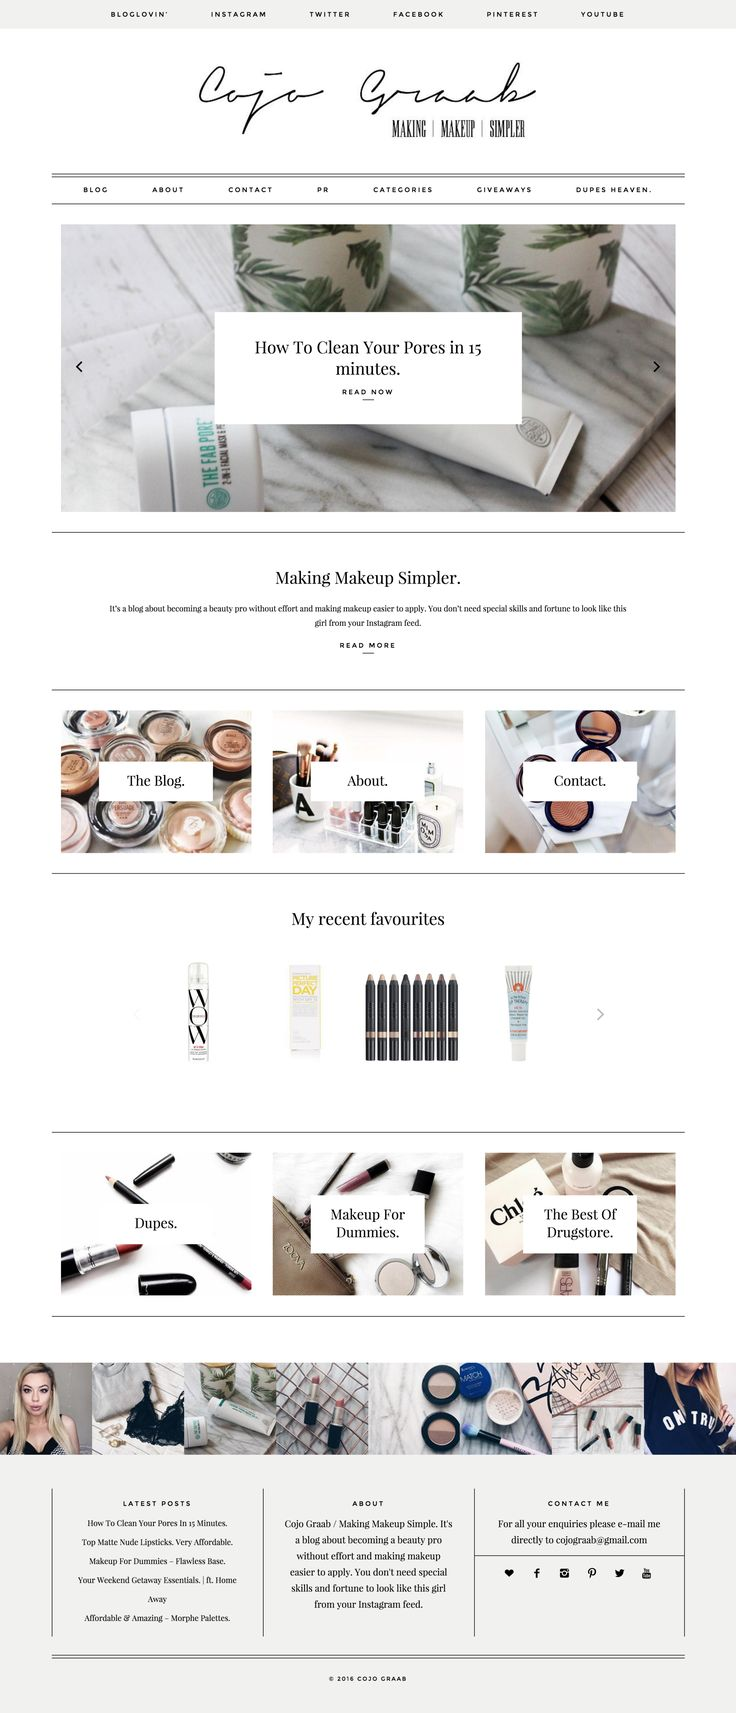 Fashion blog by Cojo Graab running on Station Seven's Parker Wordpress theme. Minimal, styled, blogging template.